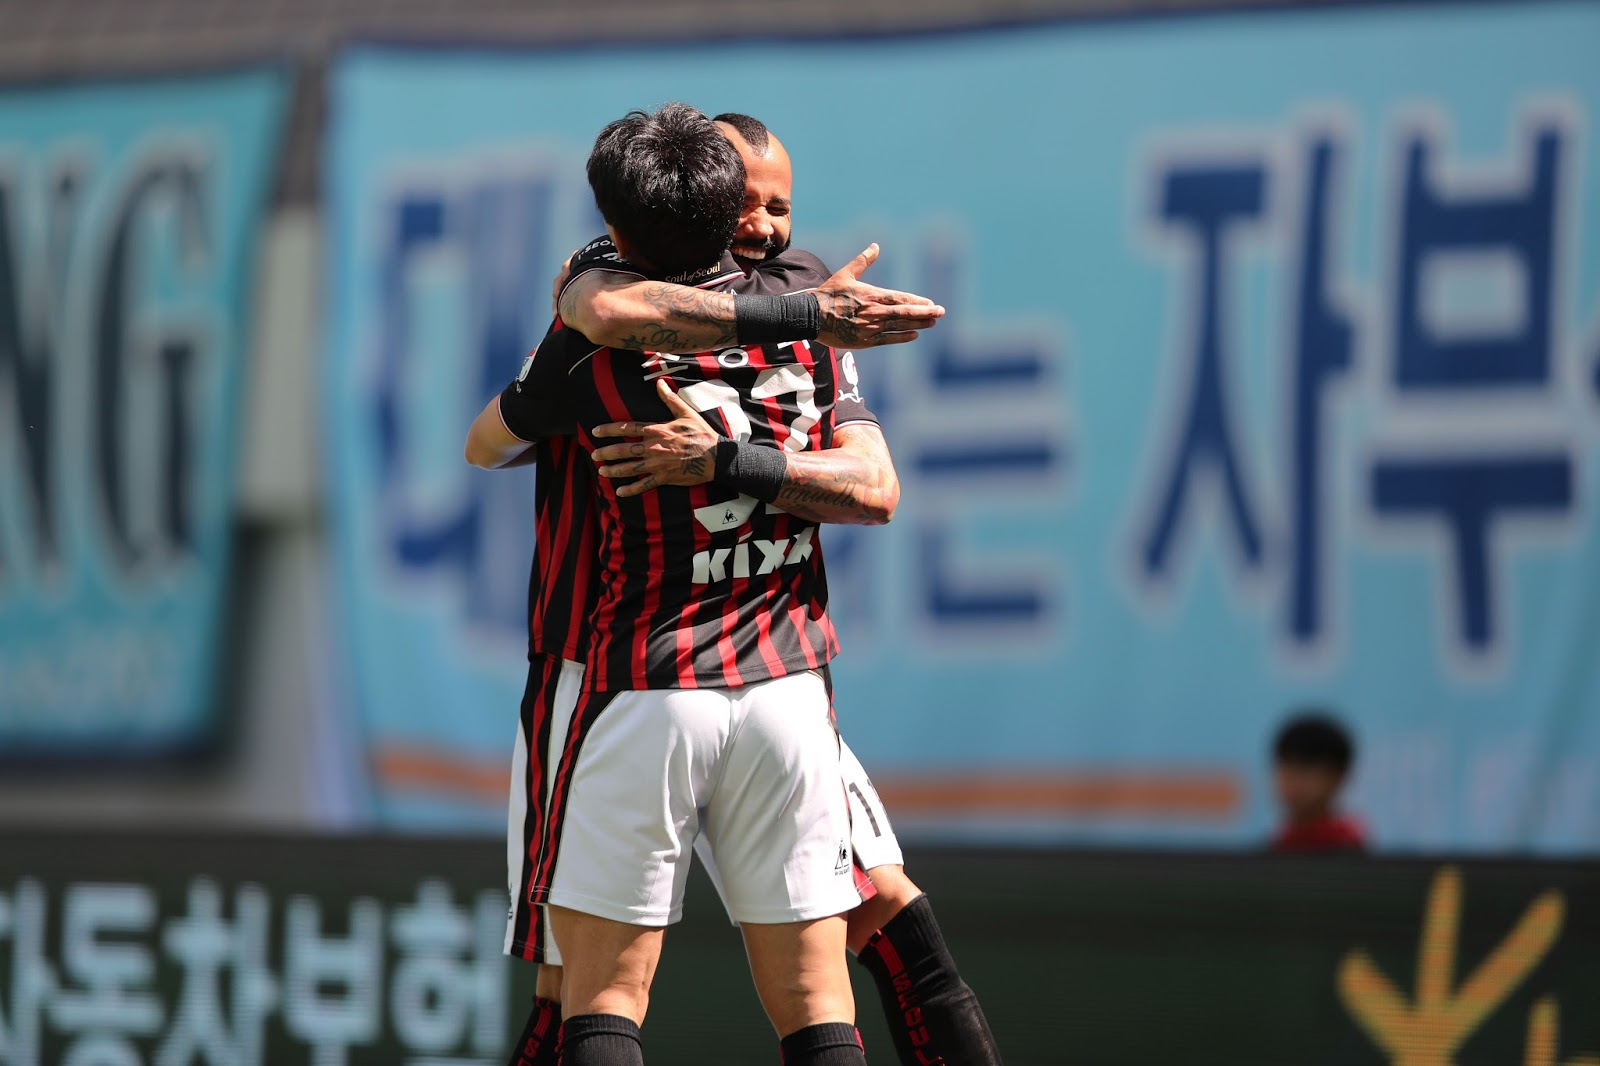 Match Report: FC Seoul 3-0 Daegu FC in K League 1 Round 8